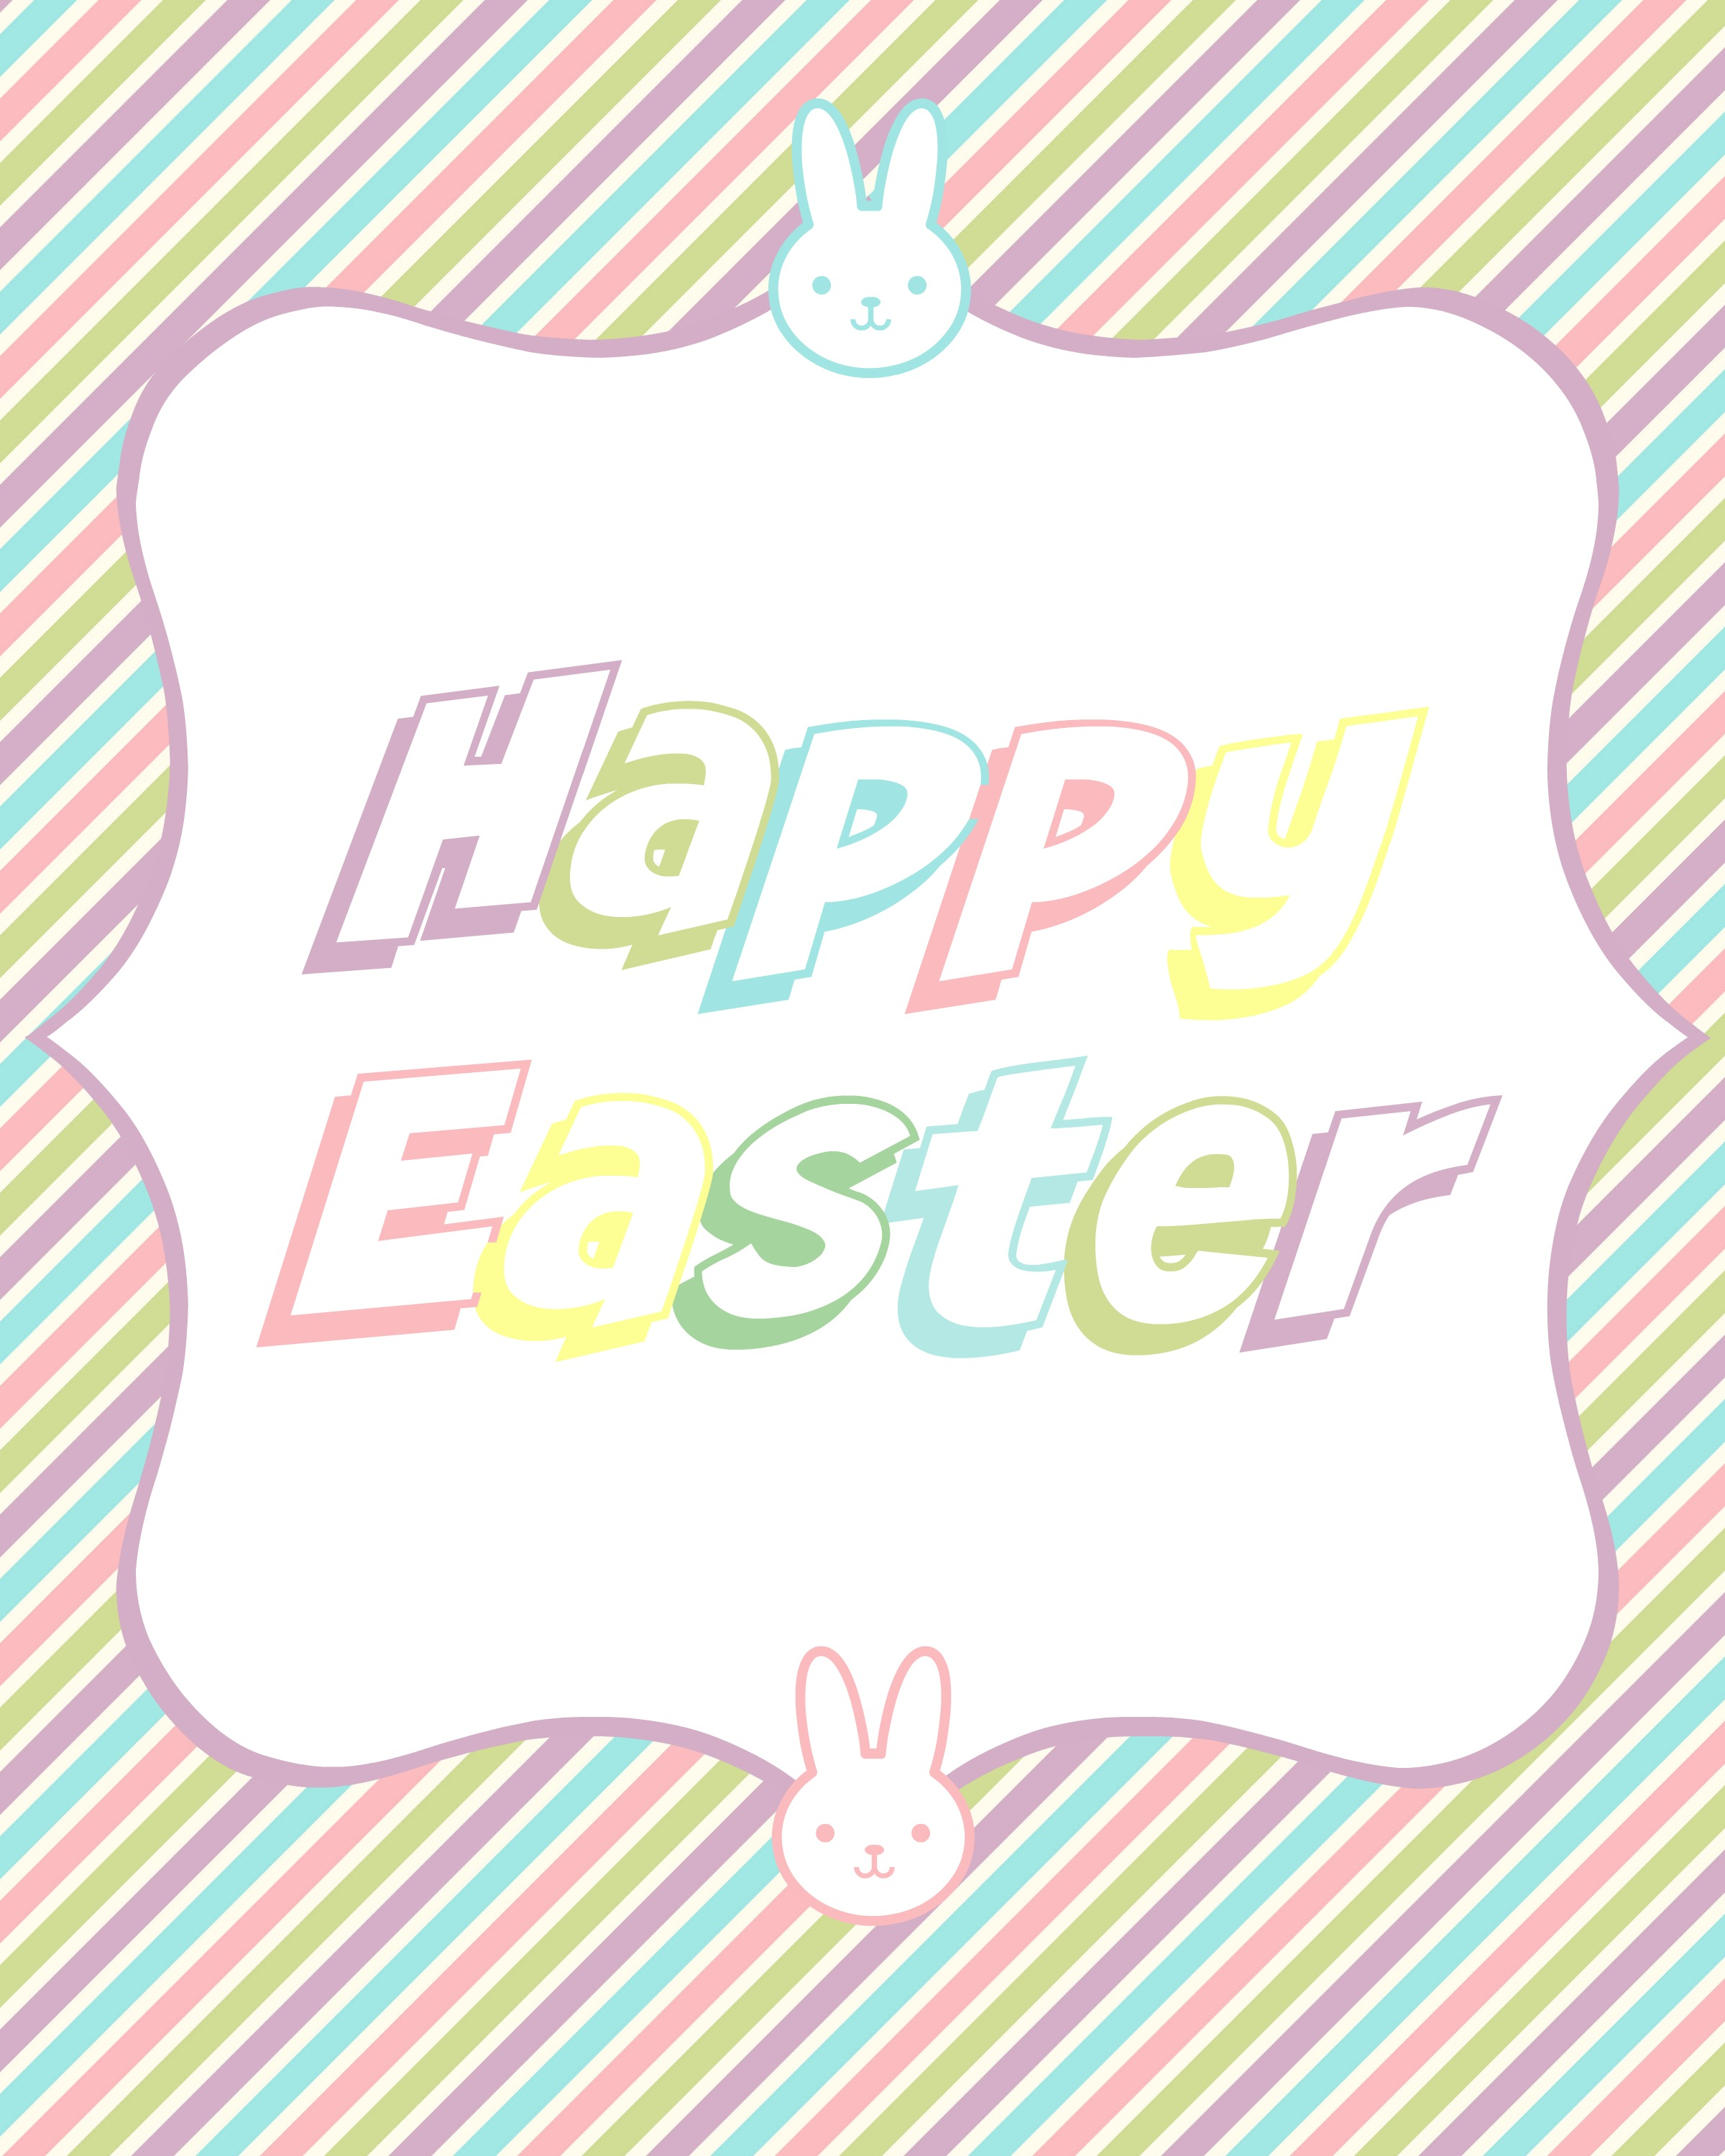 photo about Happy Easter Printable called Vibrant Bunny Joyful Easter Printable - Accurate And Quirky